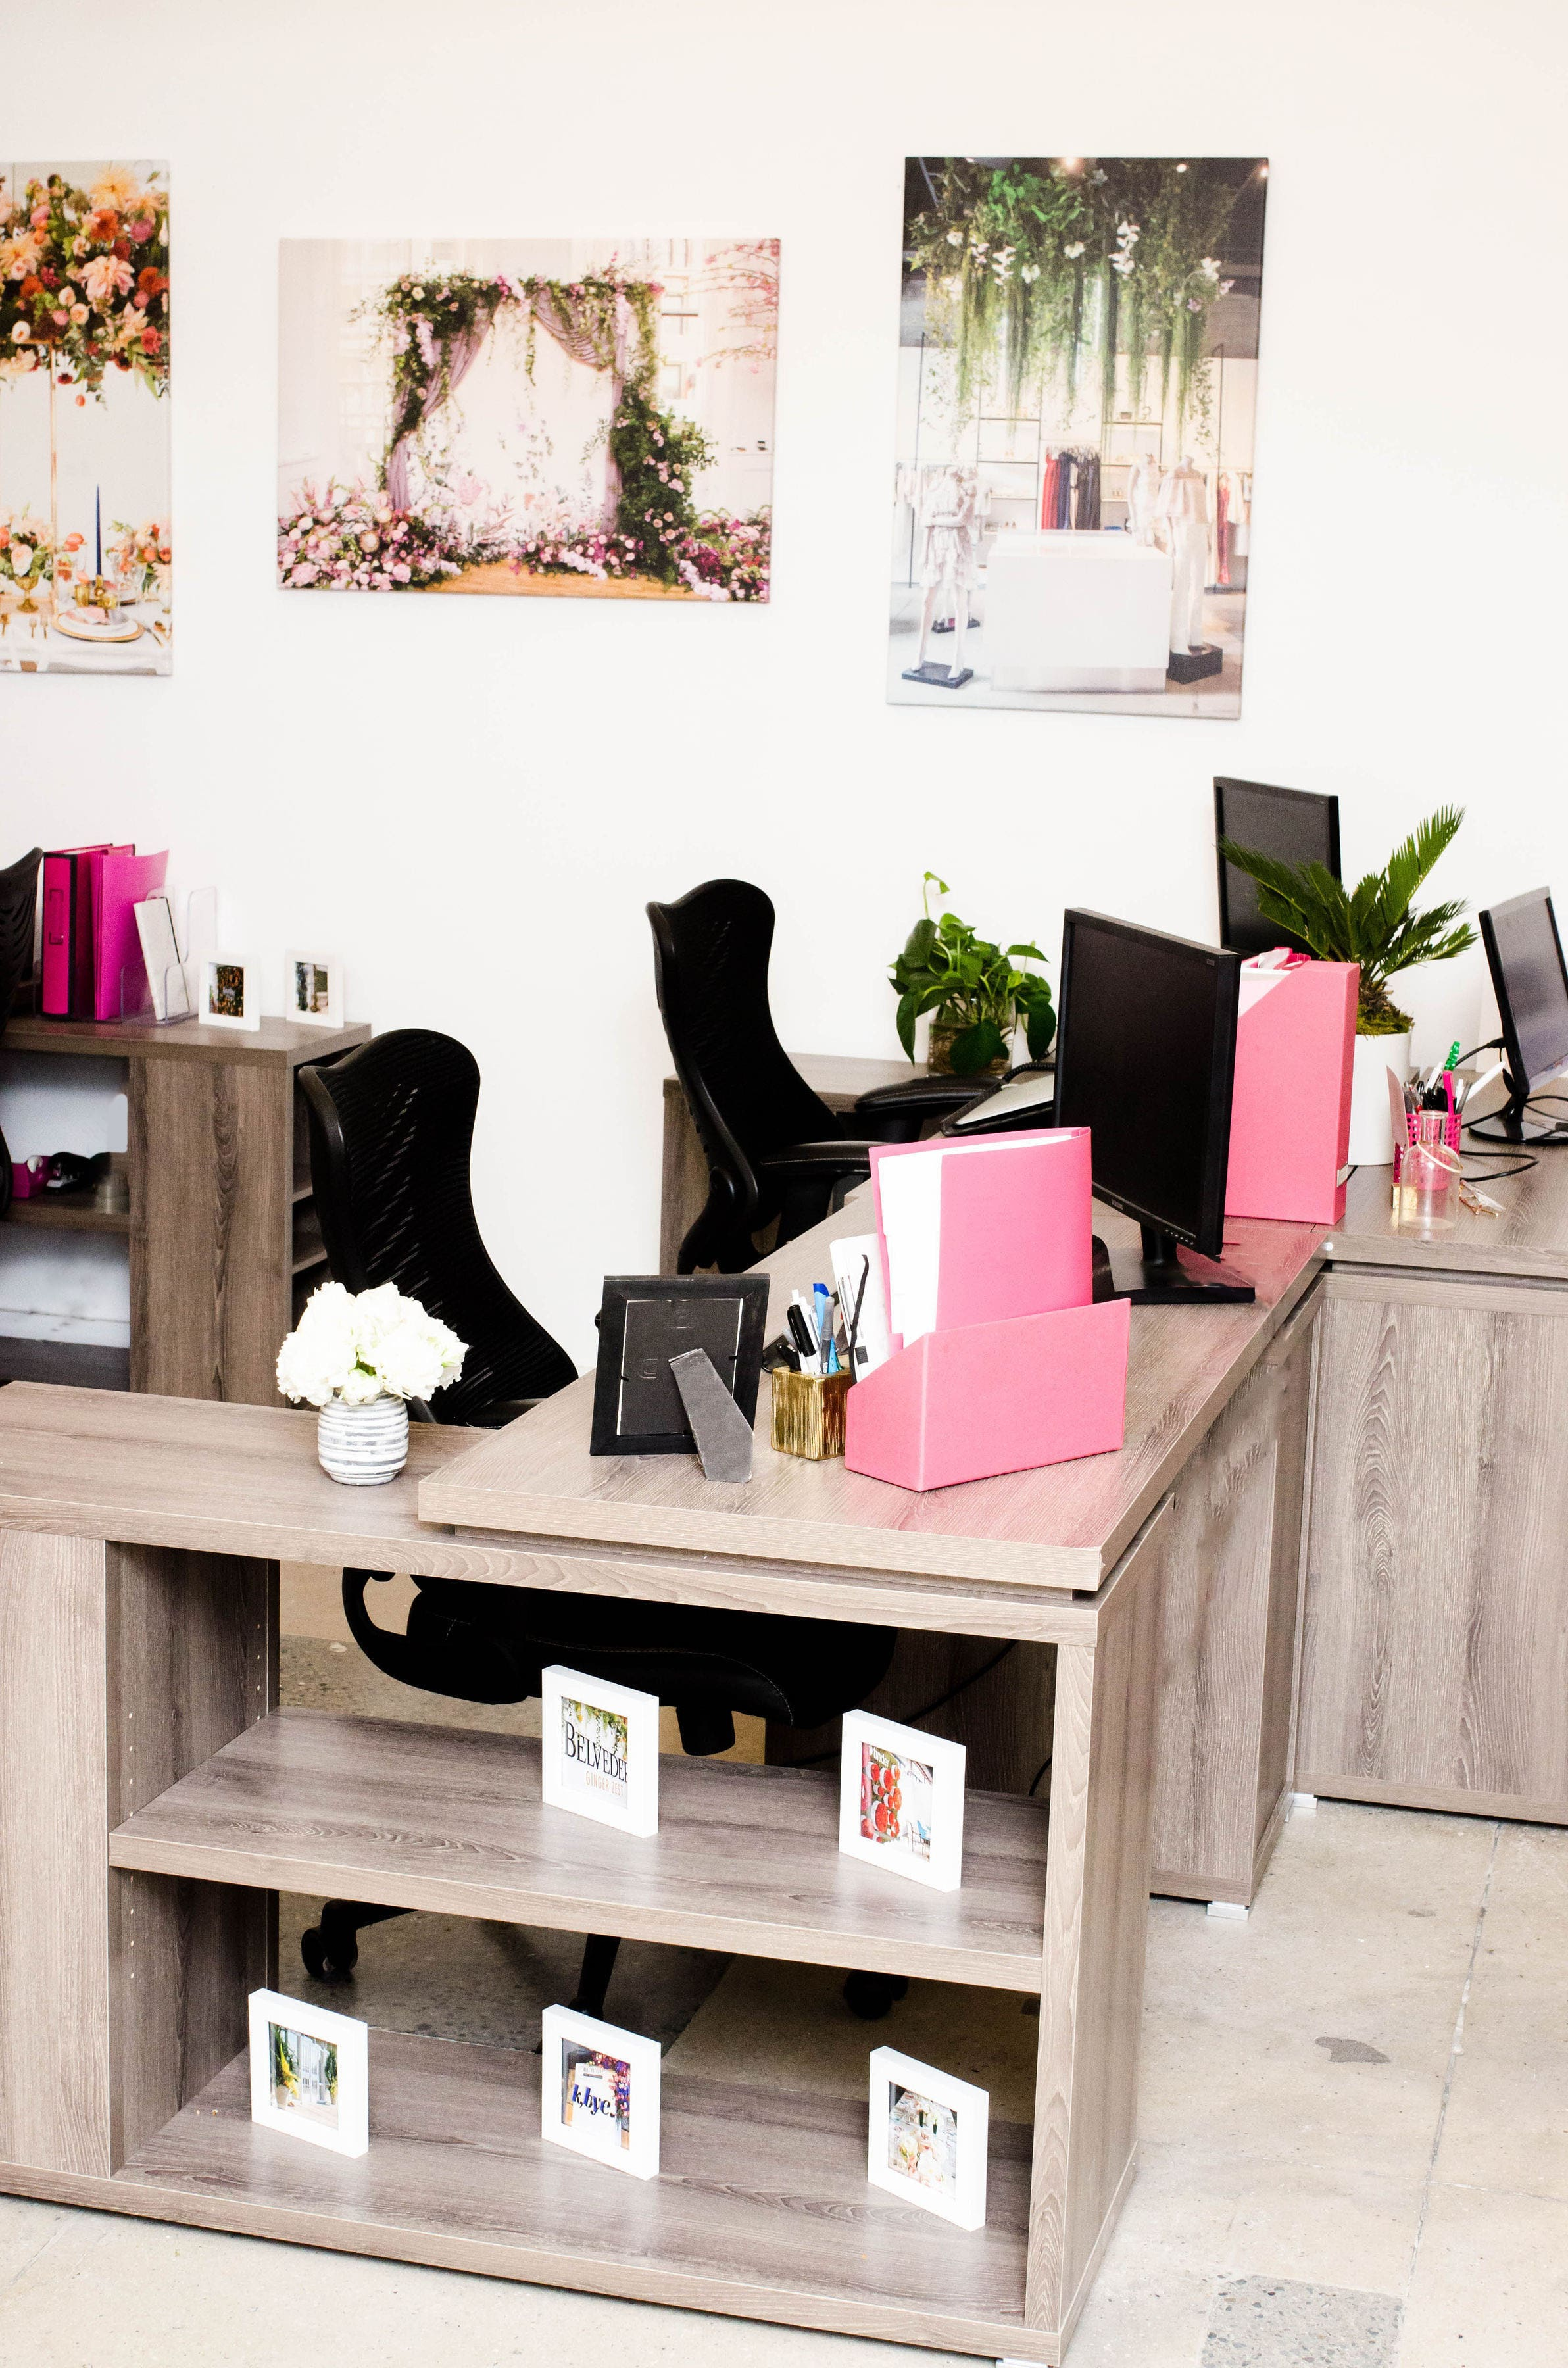 NEW - OFFICE - SPACE - MANHATTAN - COOL - OPEN - DESK - CUBICLE - B FLORAL